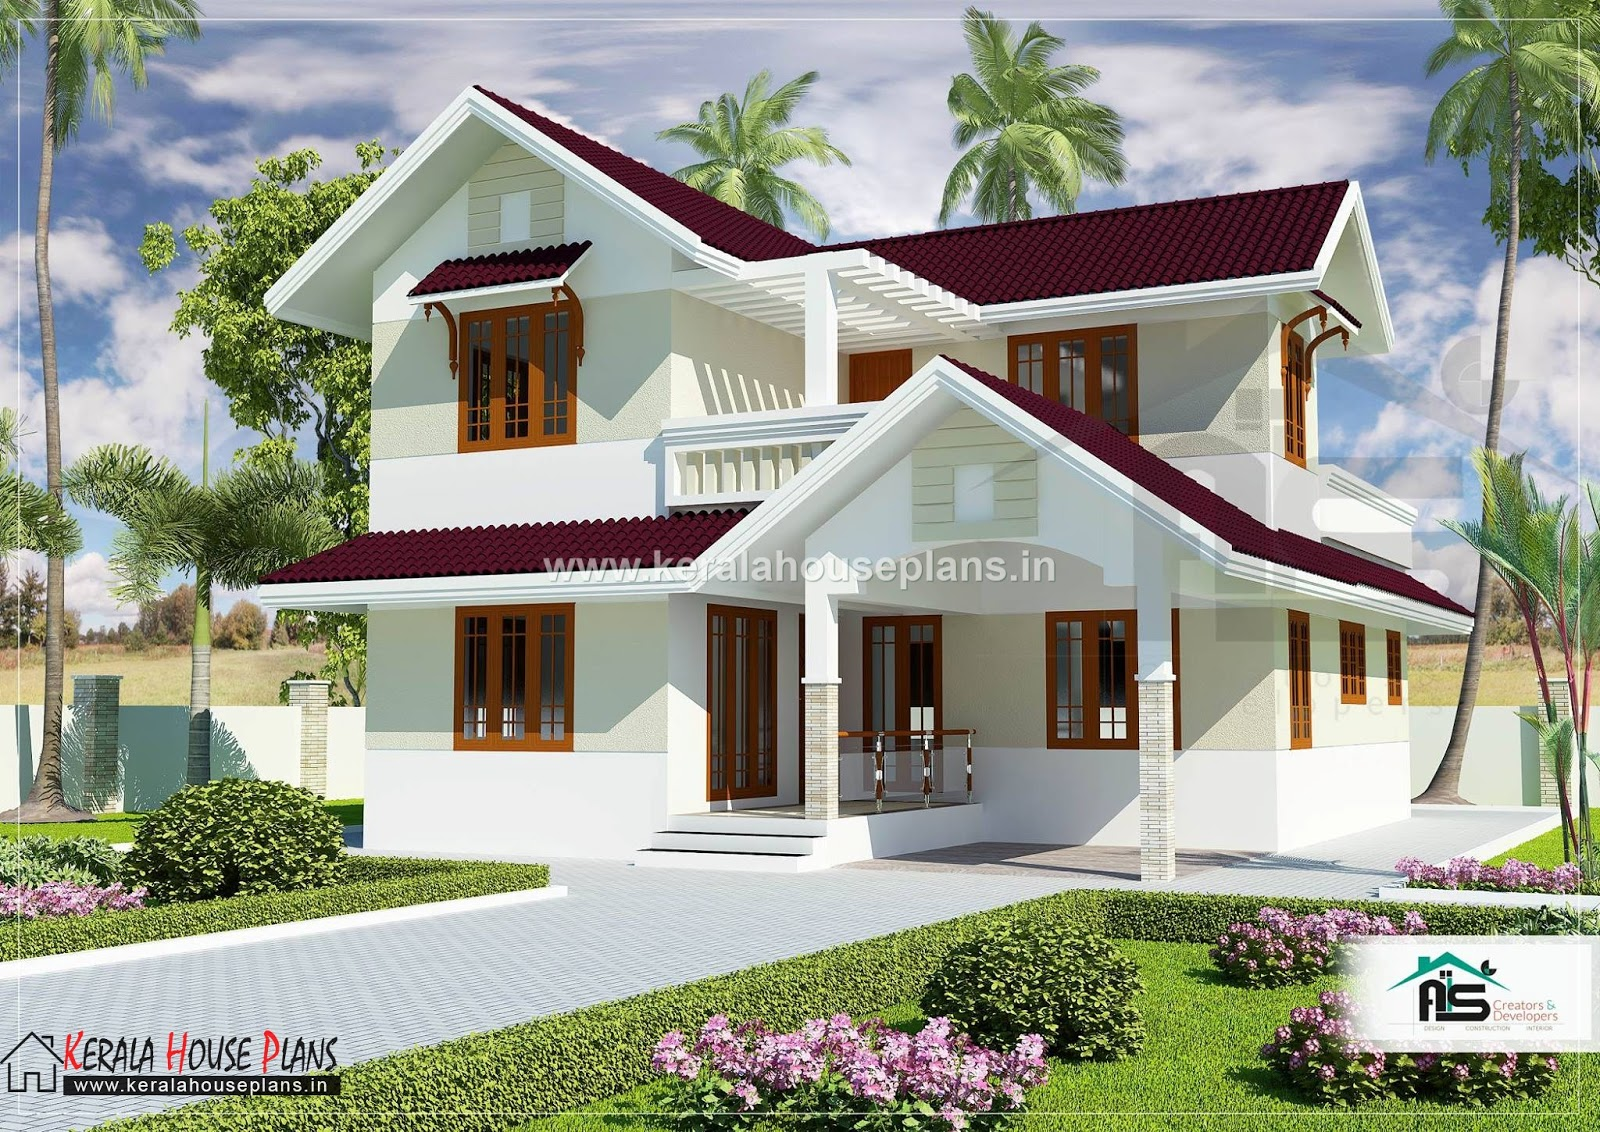 kerala model house plans with elevation 1829 sqft kerala house plans designs floor plans and. Black Bedroom Furniture Sets. Home Design Ideas